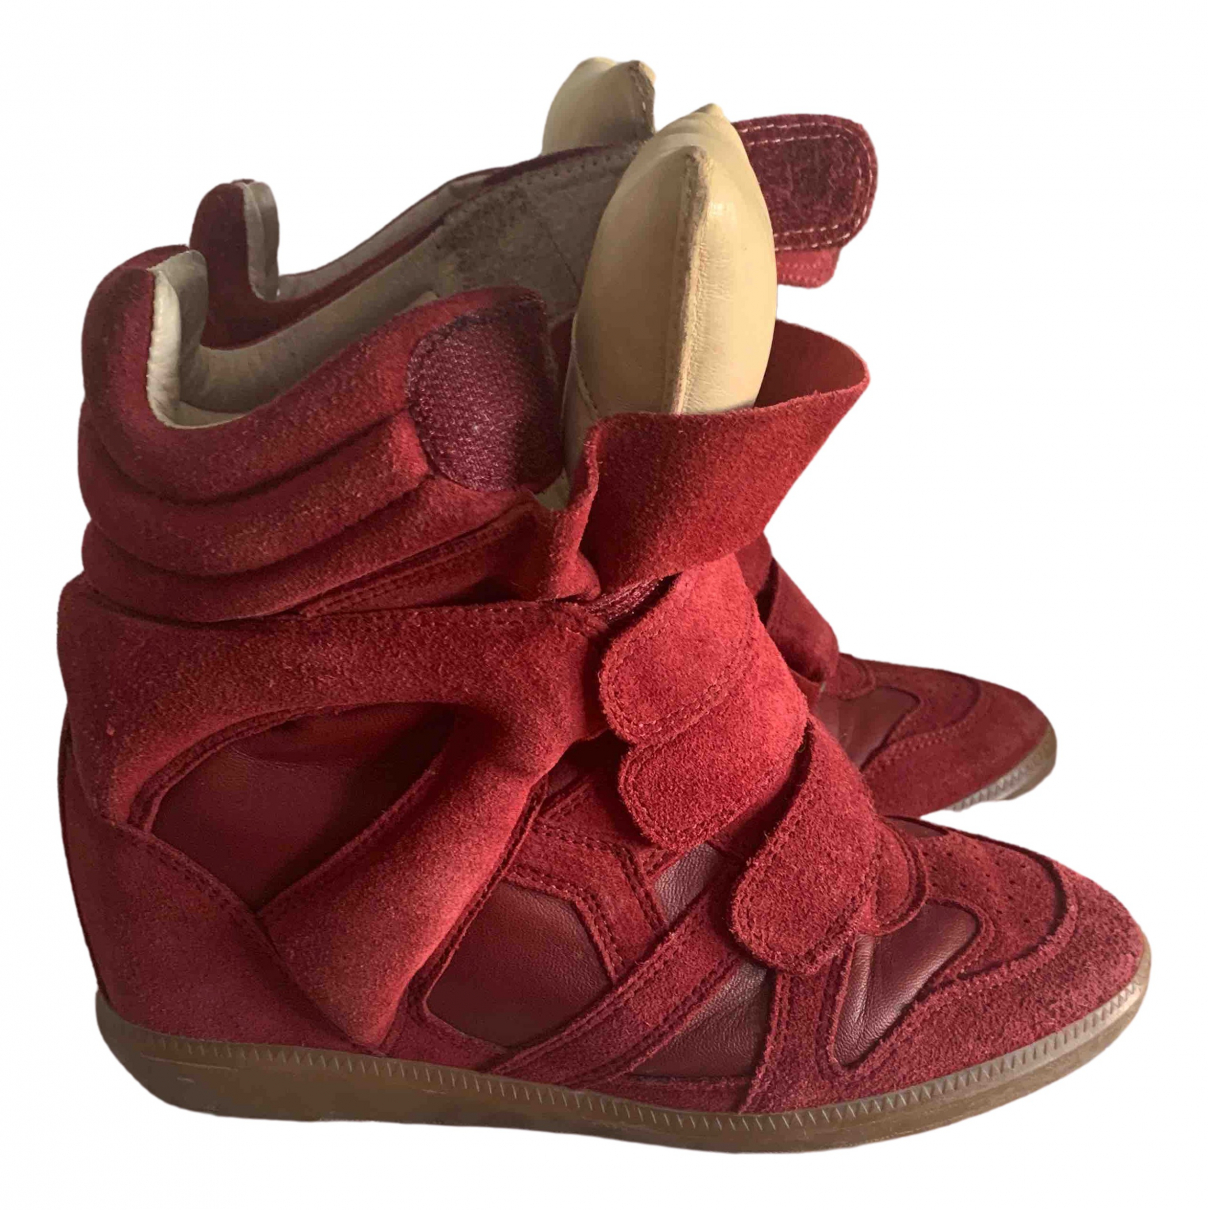 Isabel Marant Bayley Burgundy Suede Trainers for Women 37 EU